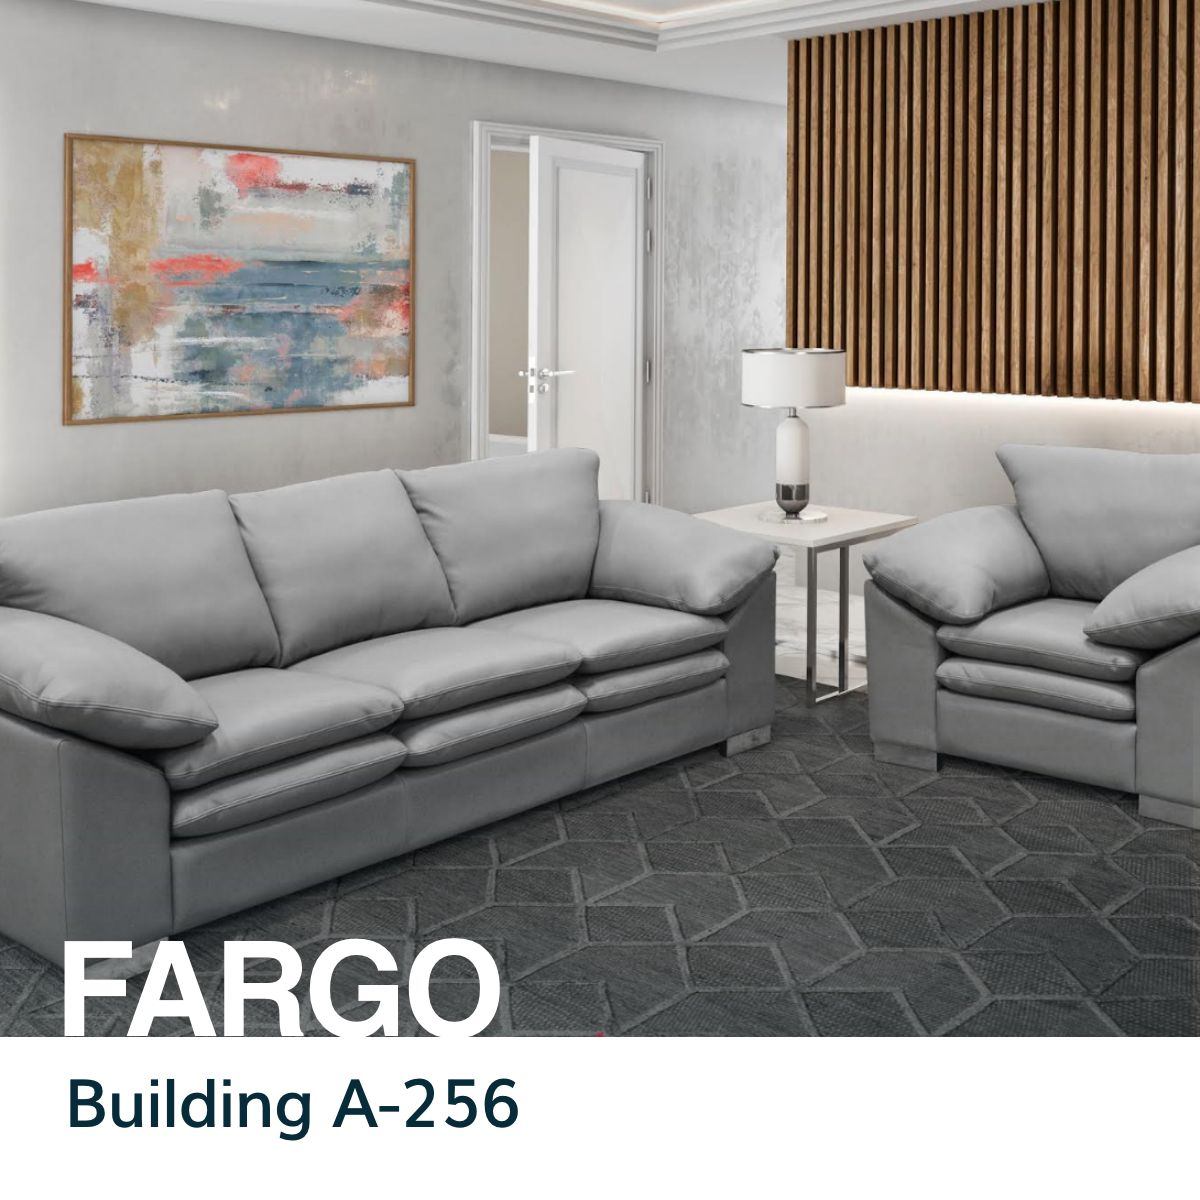 - The Fargo Is One Of Our Best Sellers That Is Still Going Strong